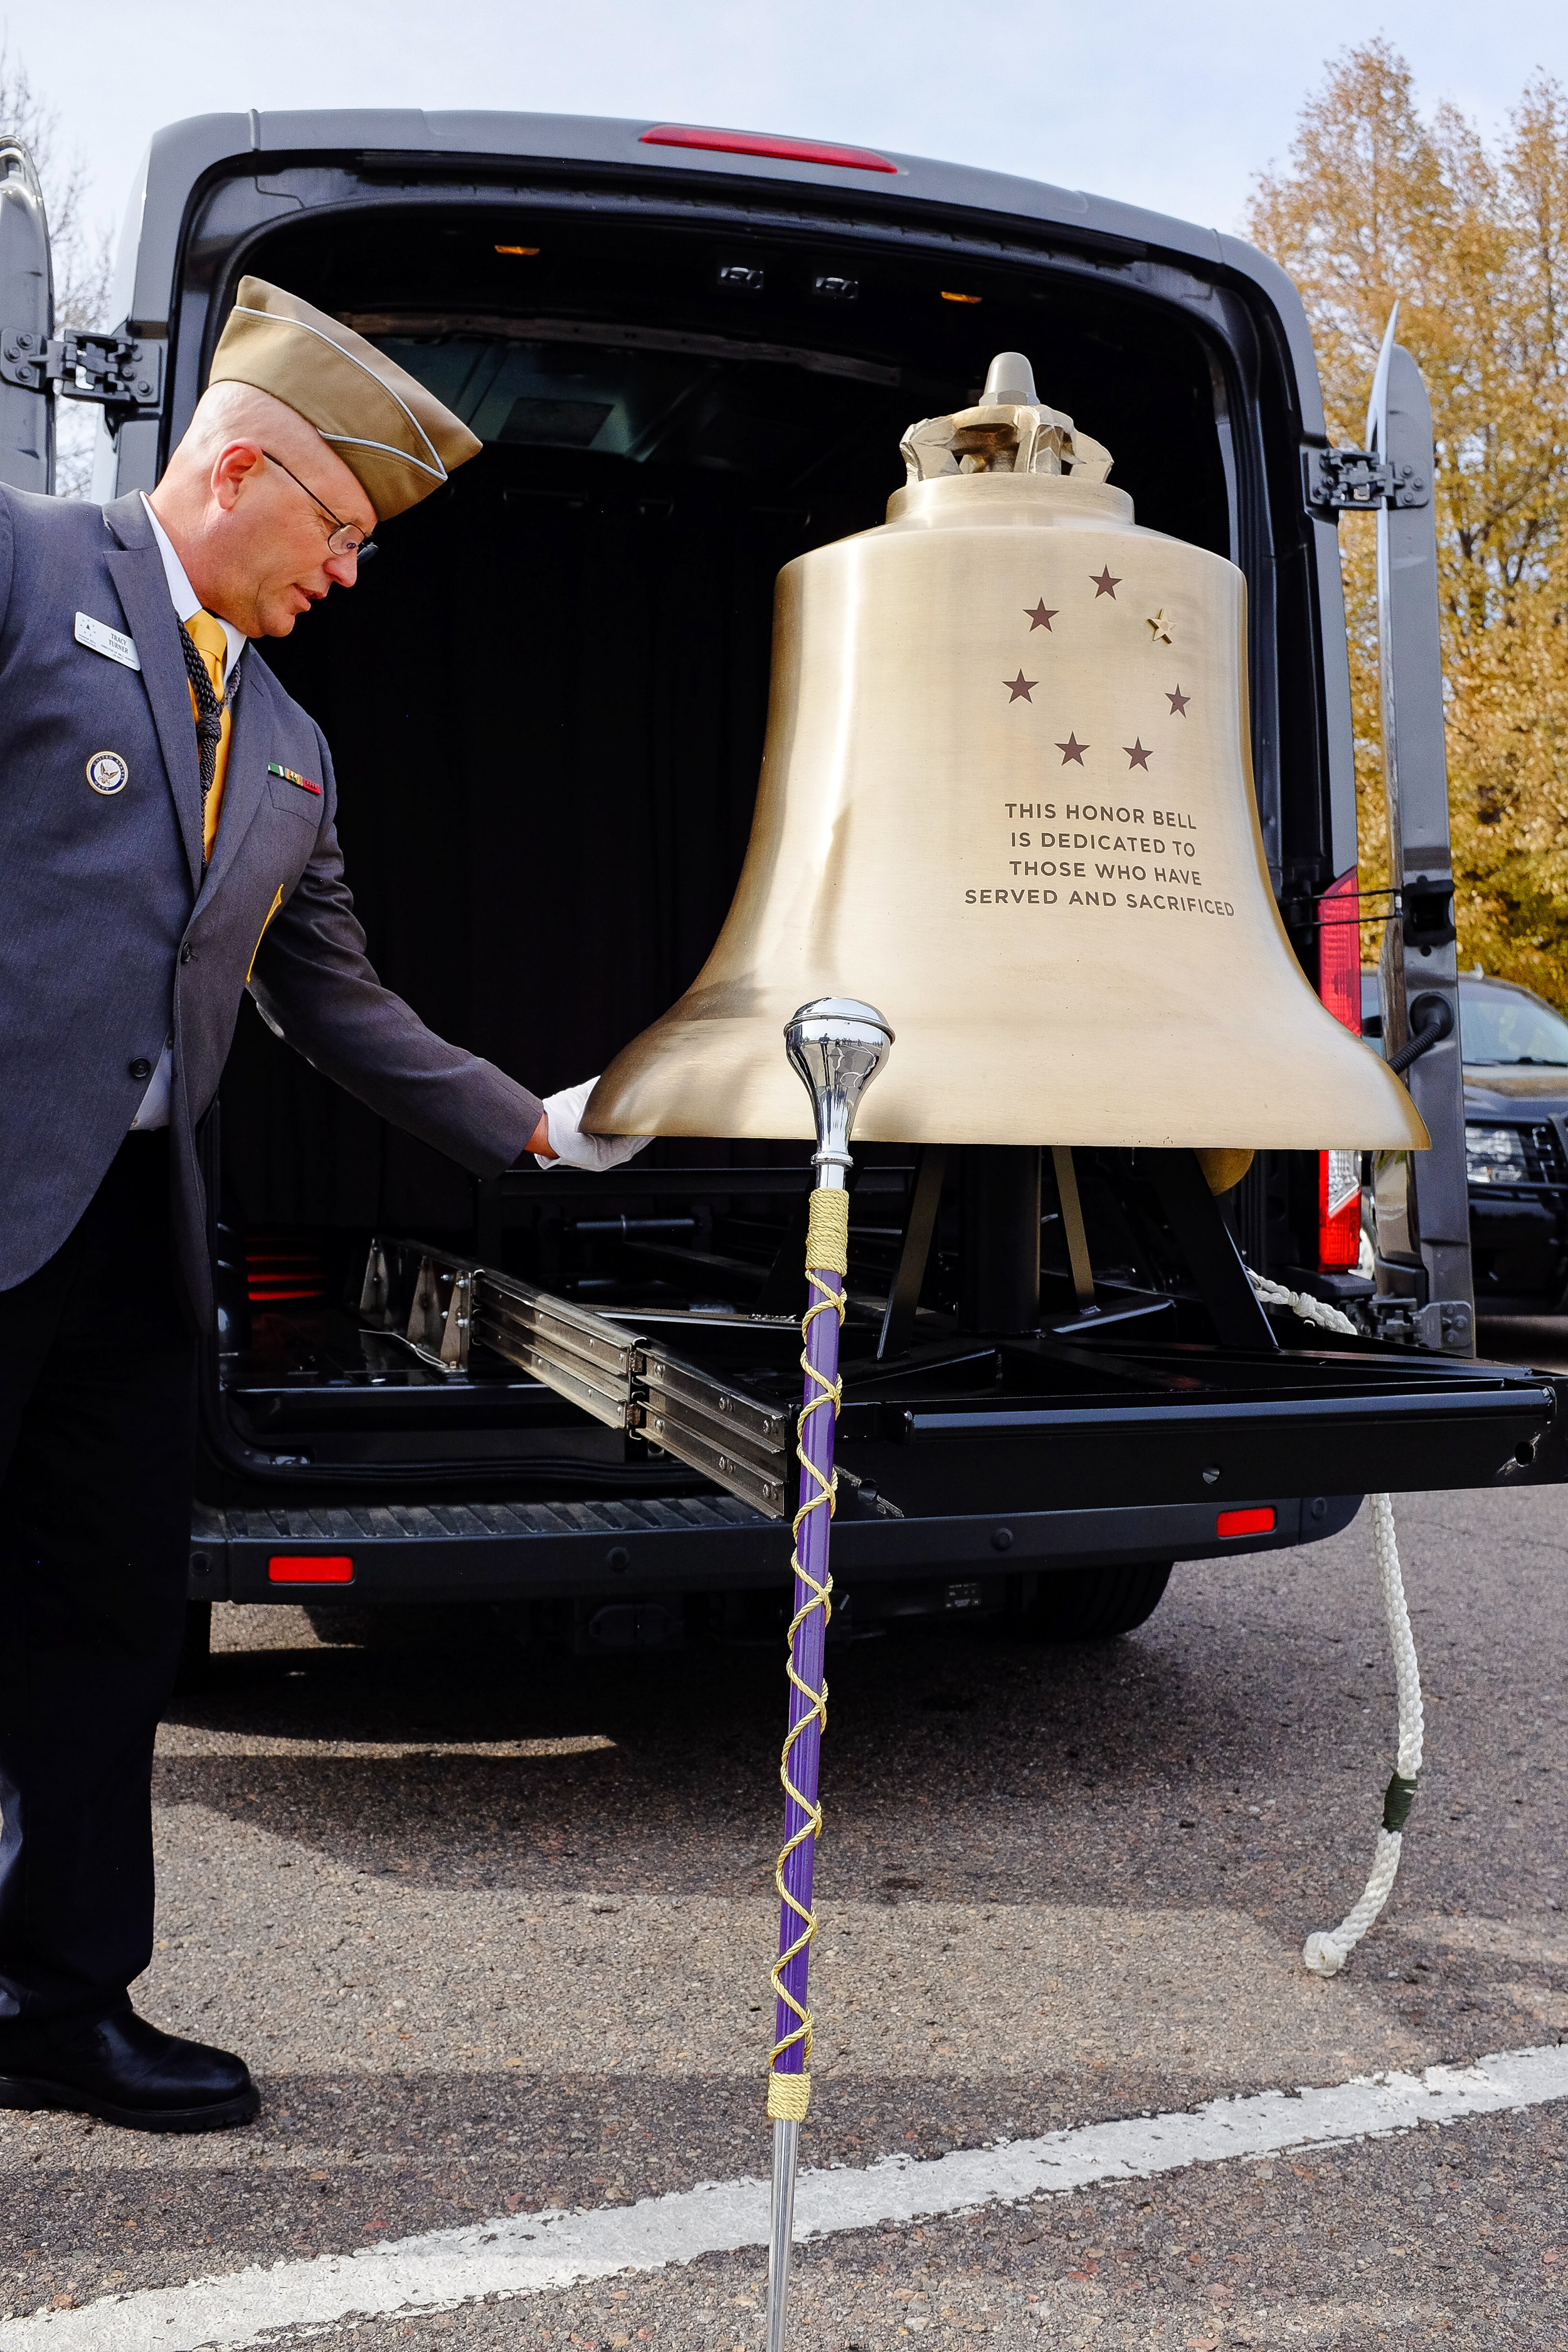 Tracy Turner inspecting the Honor Bell prior to a Bell Honors service for unclaimed veteran remains in 2018.